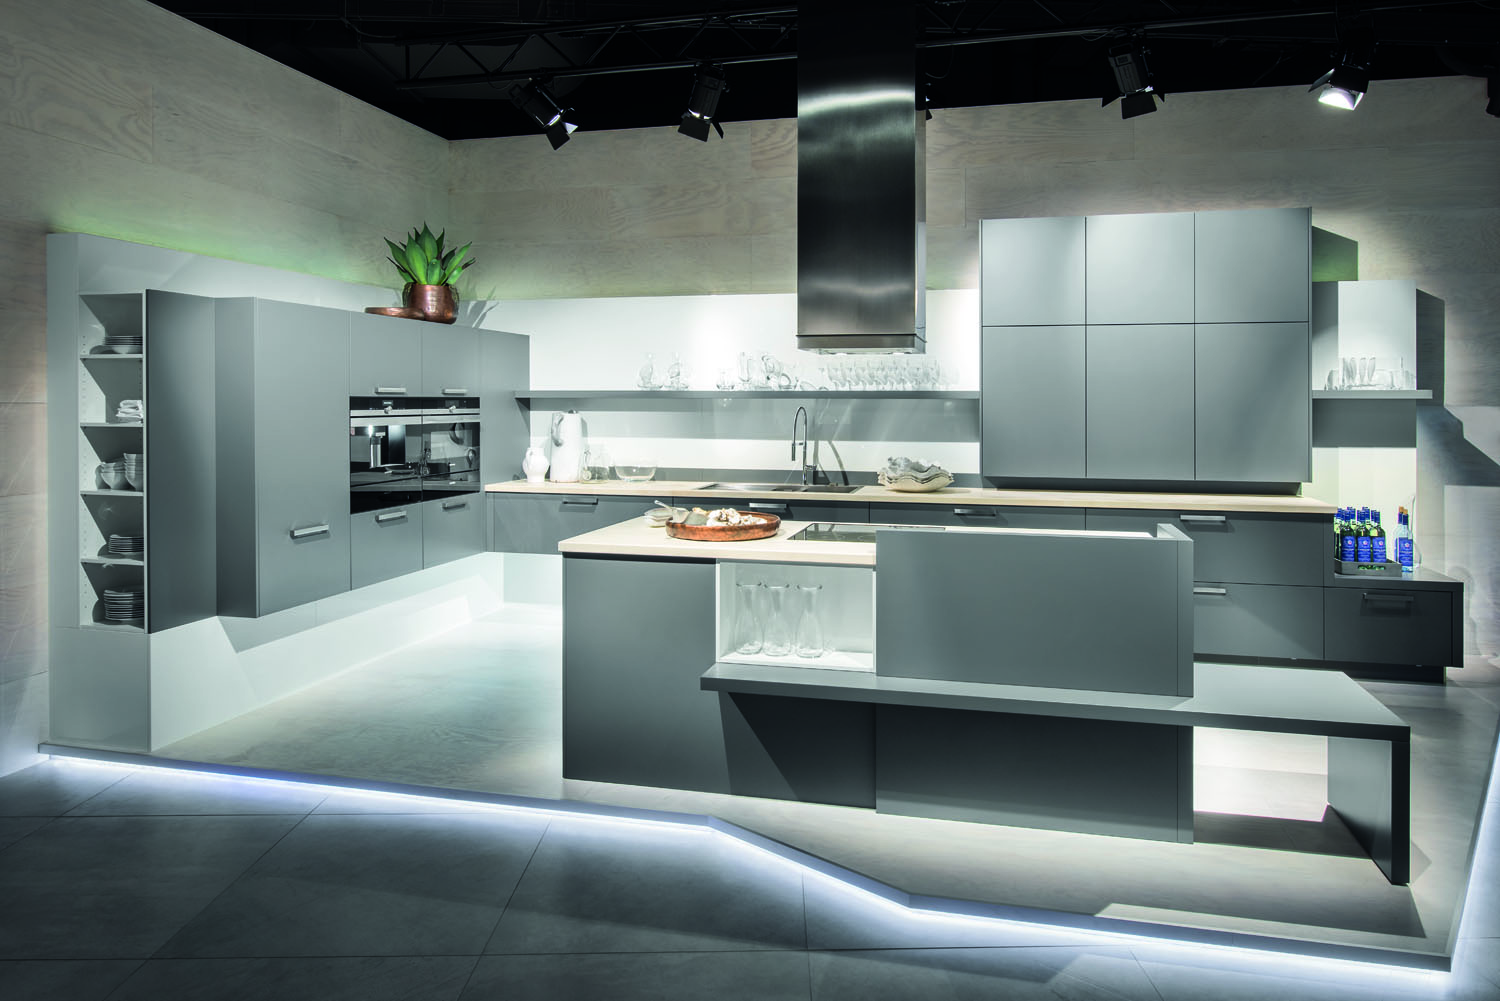 Grey kitchen modern kitchen london by lwk kitchens london - Matt Satin Lacquer Lava Grey Kitchens From Lwk Kitchens German Kitchen Supplier